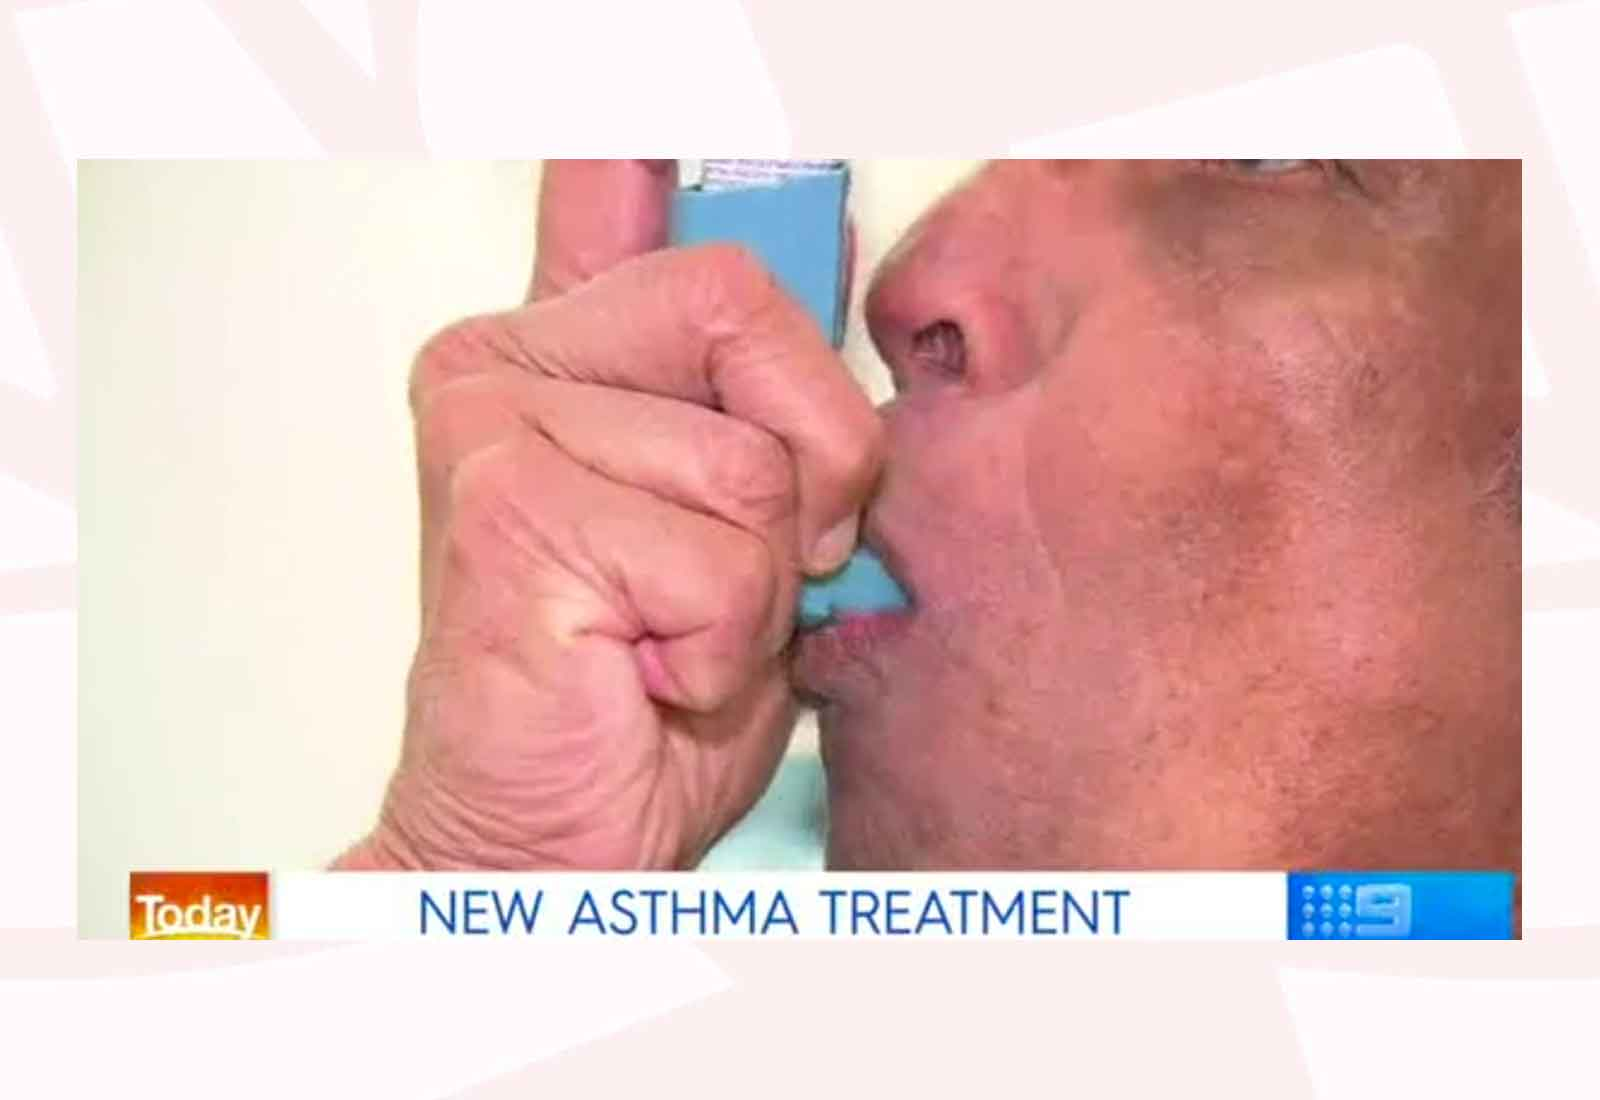 The Today Show: New asthma treatment available for mild sufferers